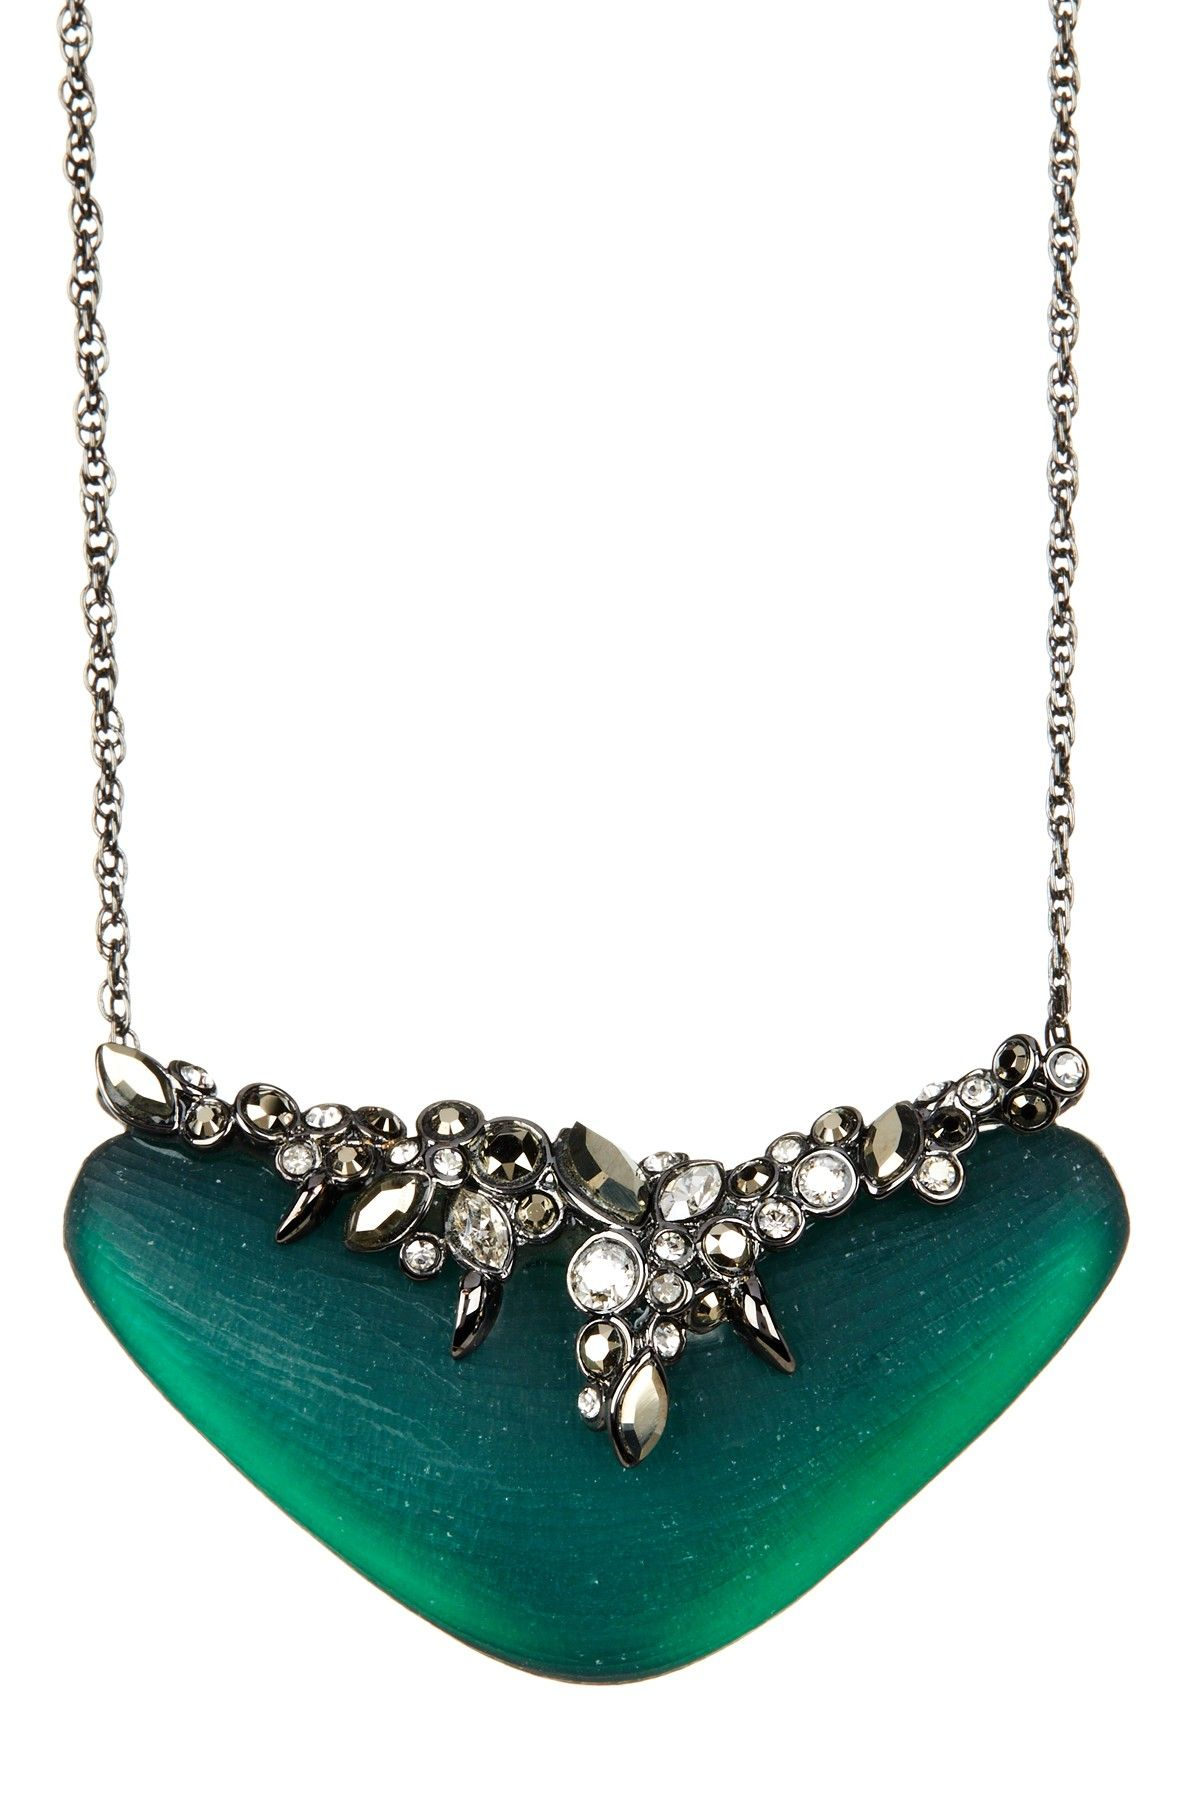 Alexis Bittar | Lucite Single Tier Crystal Lace Pendant Necklace | Nordstrom Rack